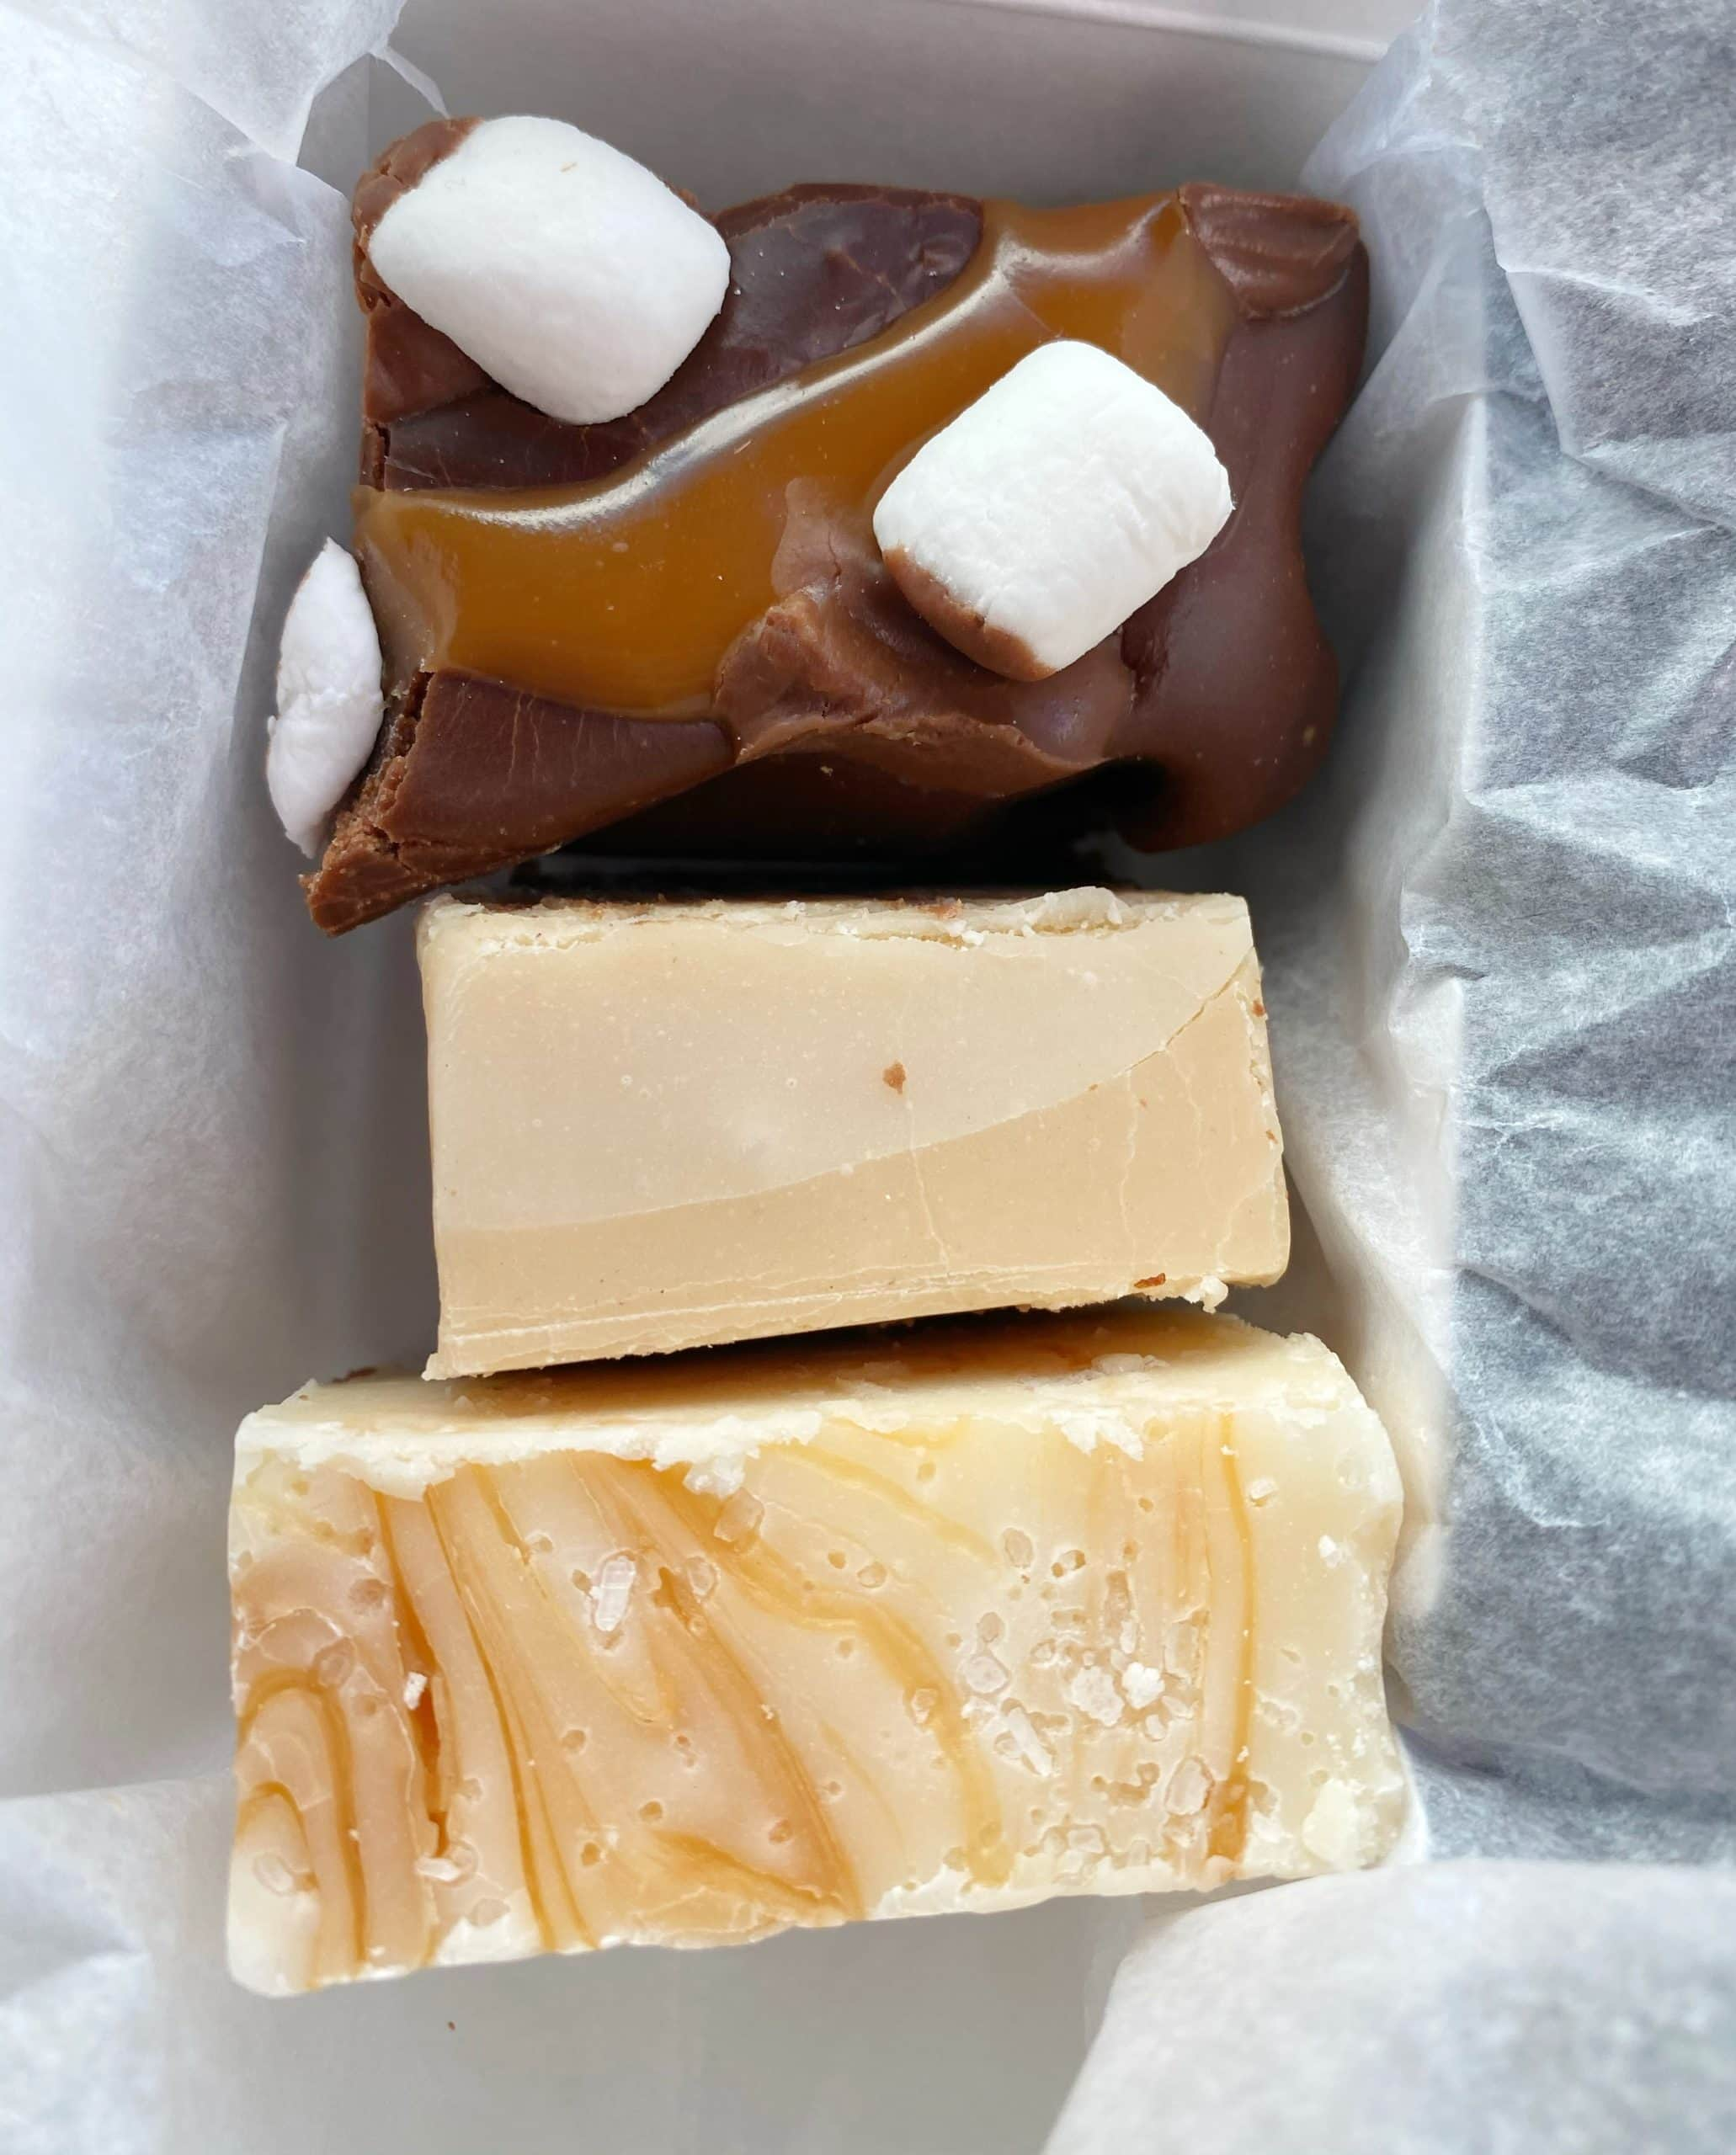 Pine Creek Fudge and Espresso in Pine, Arizona